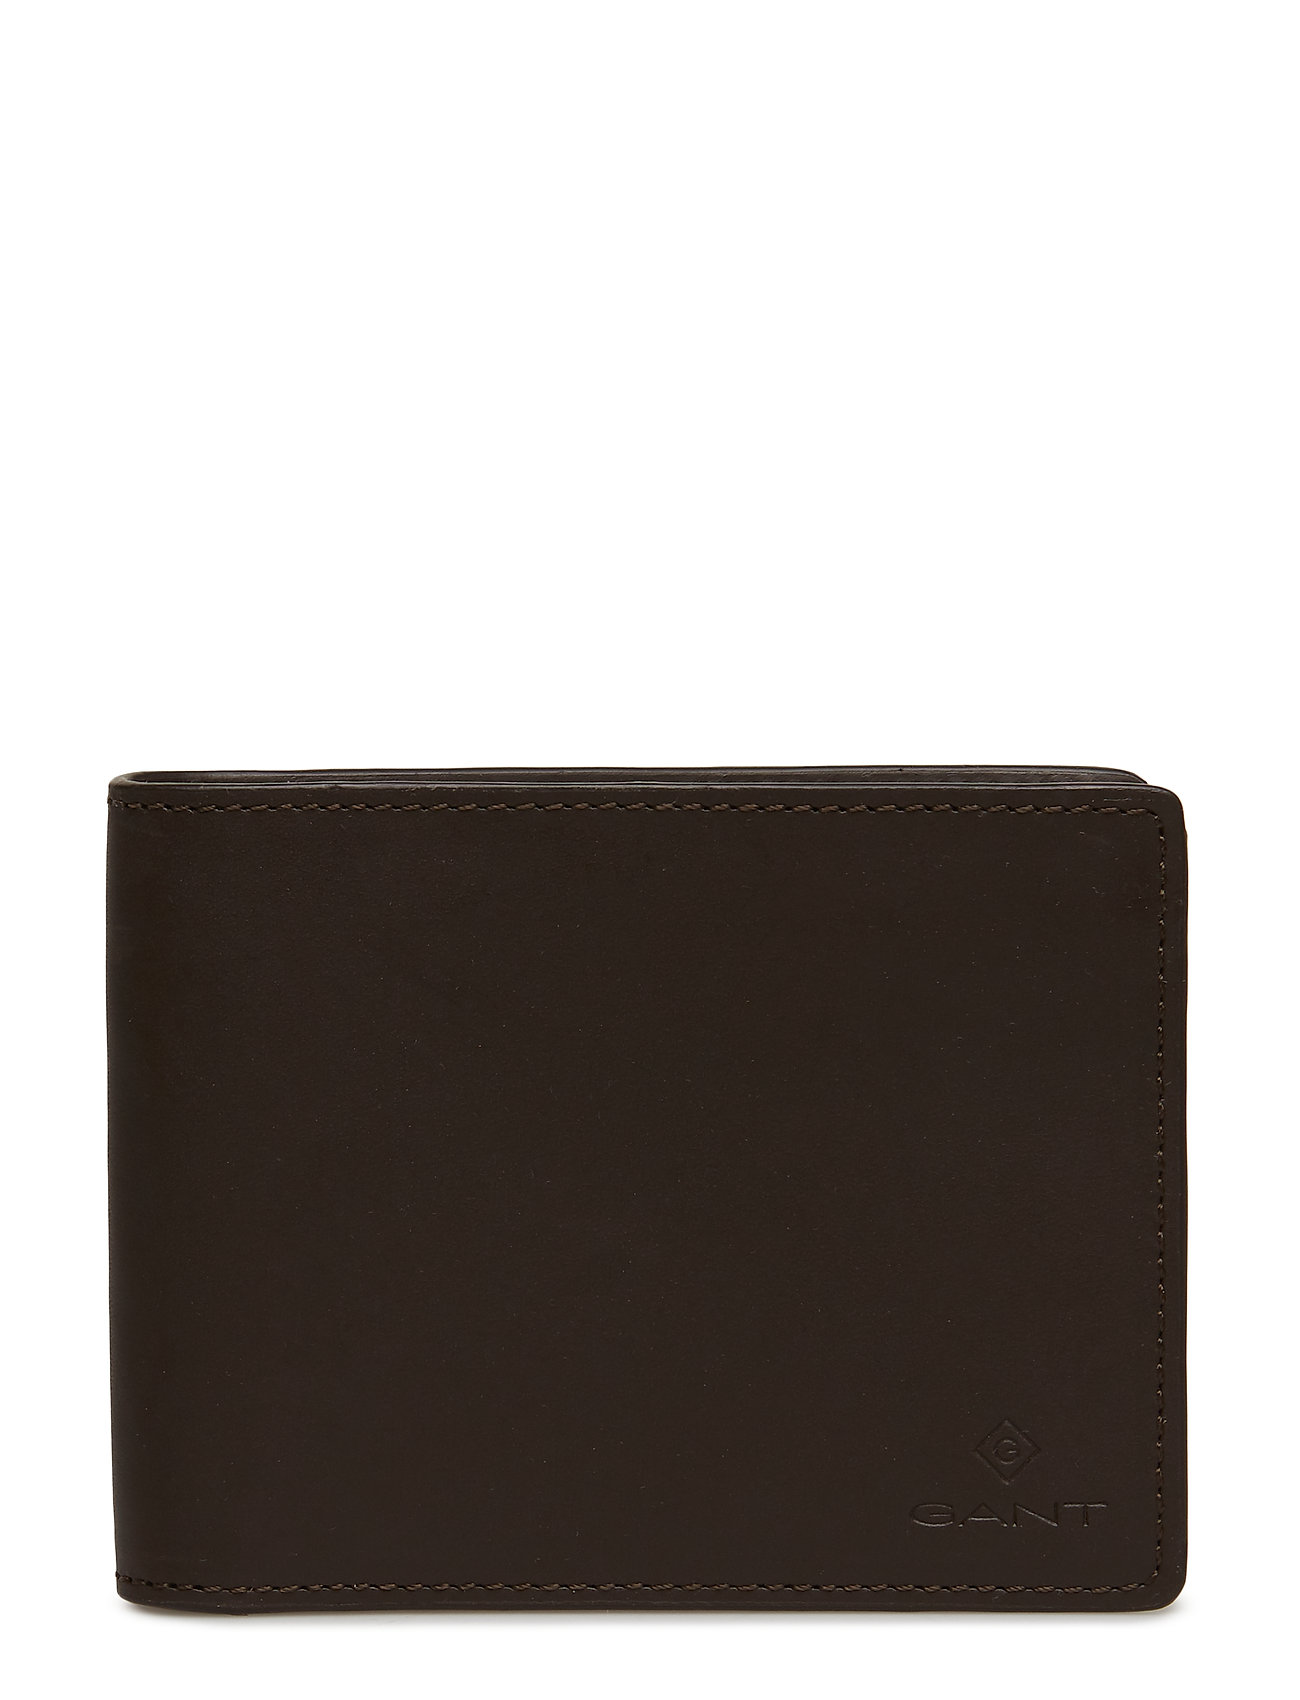 GANT LEATHER WALLET